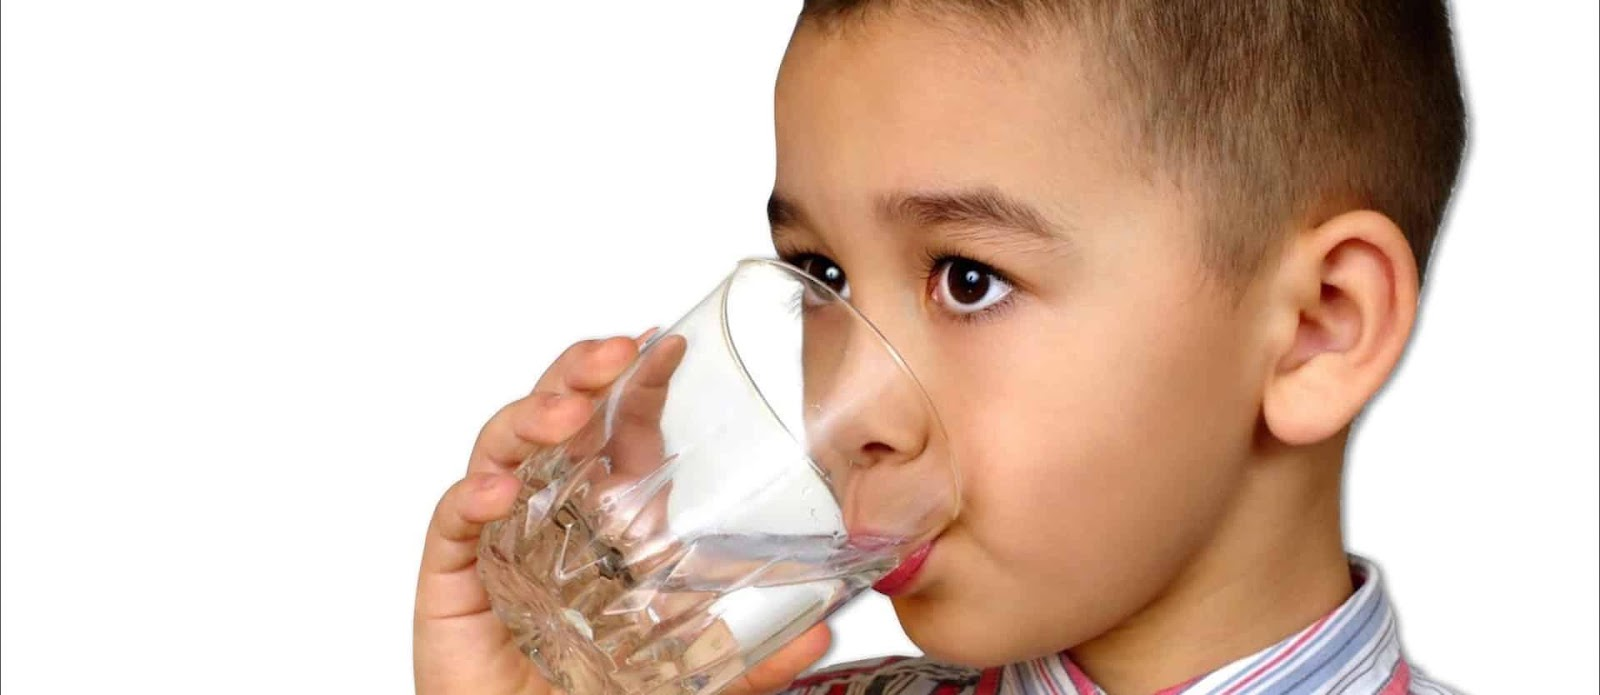 NF-May1-Does-a-Drink-Of-Water-Make-Children-Smarter.jpg